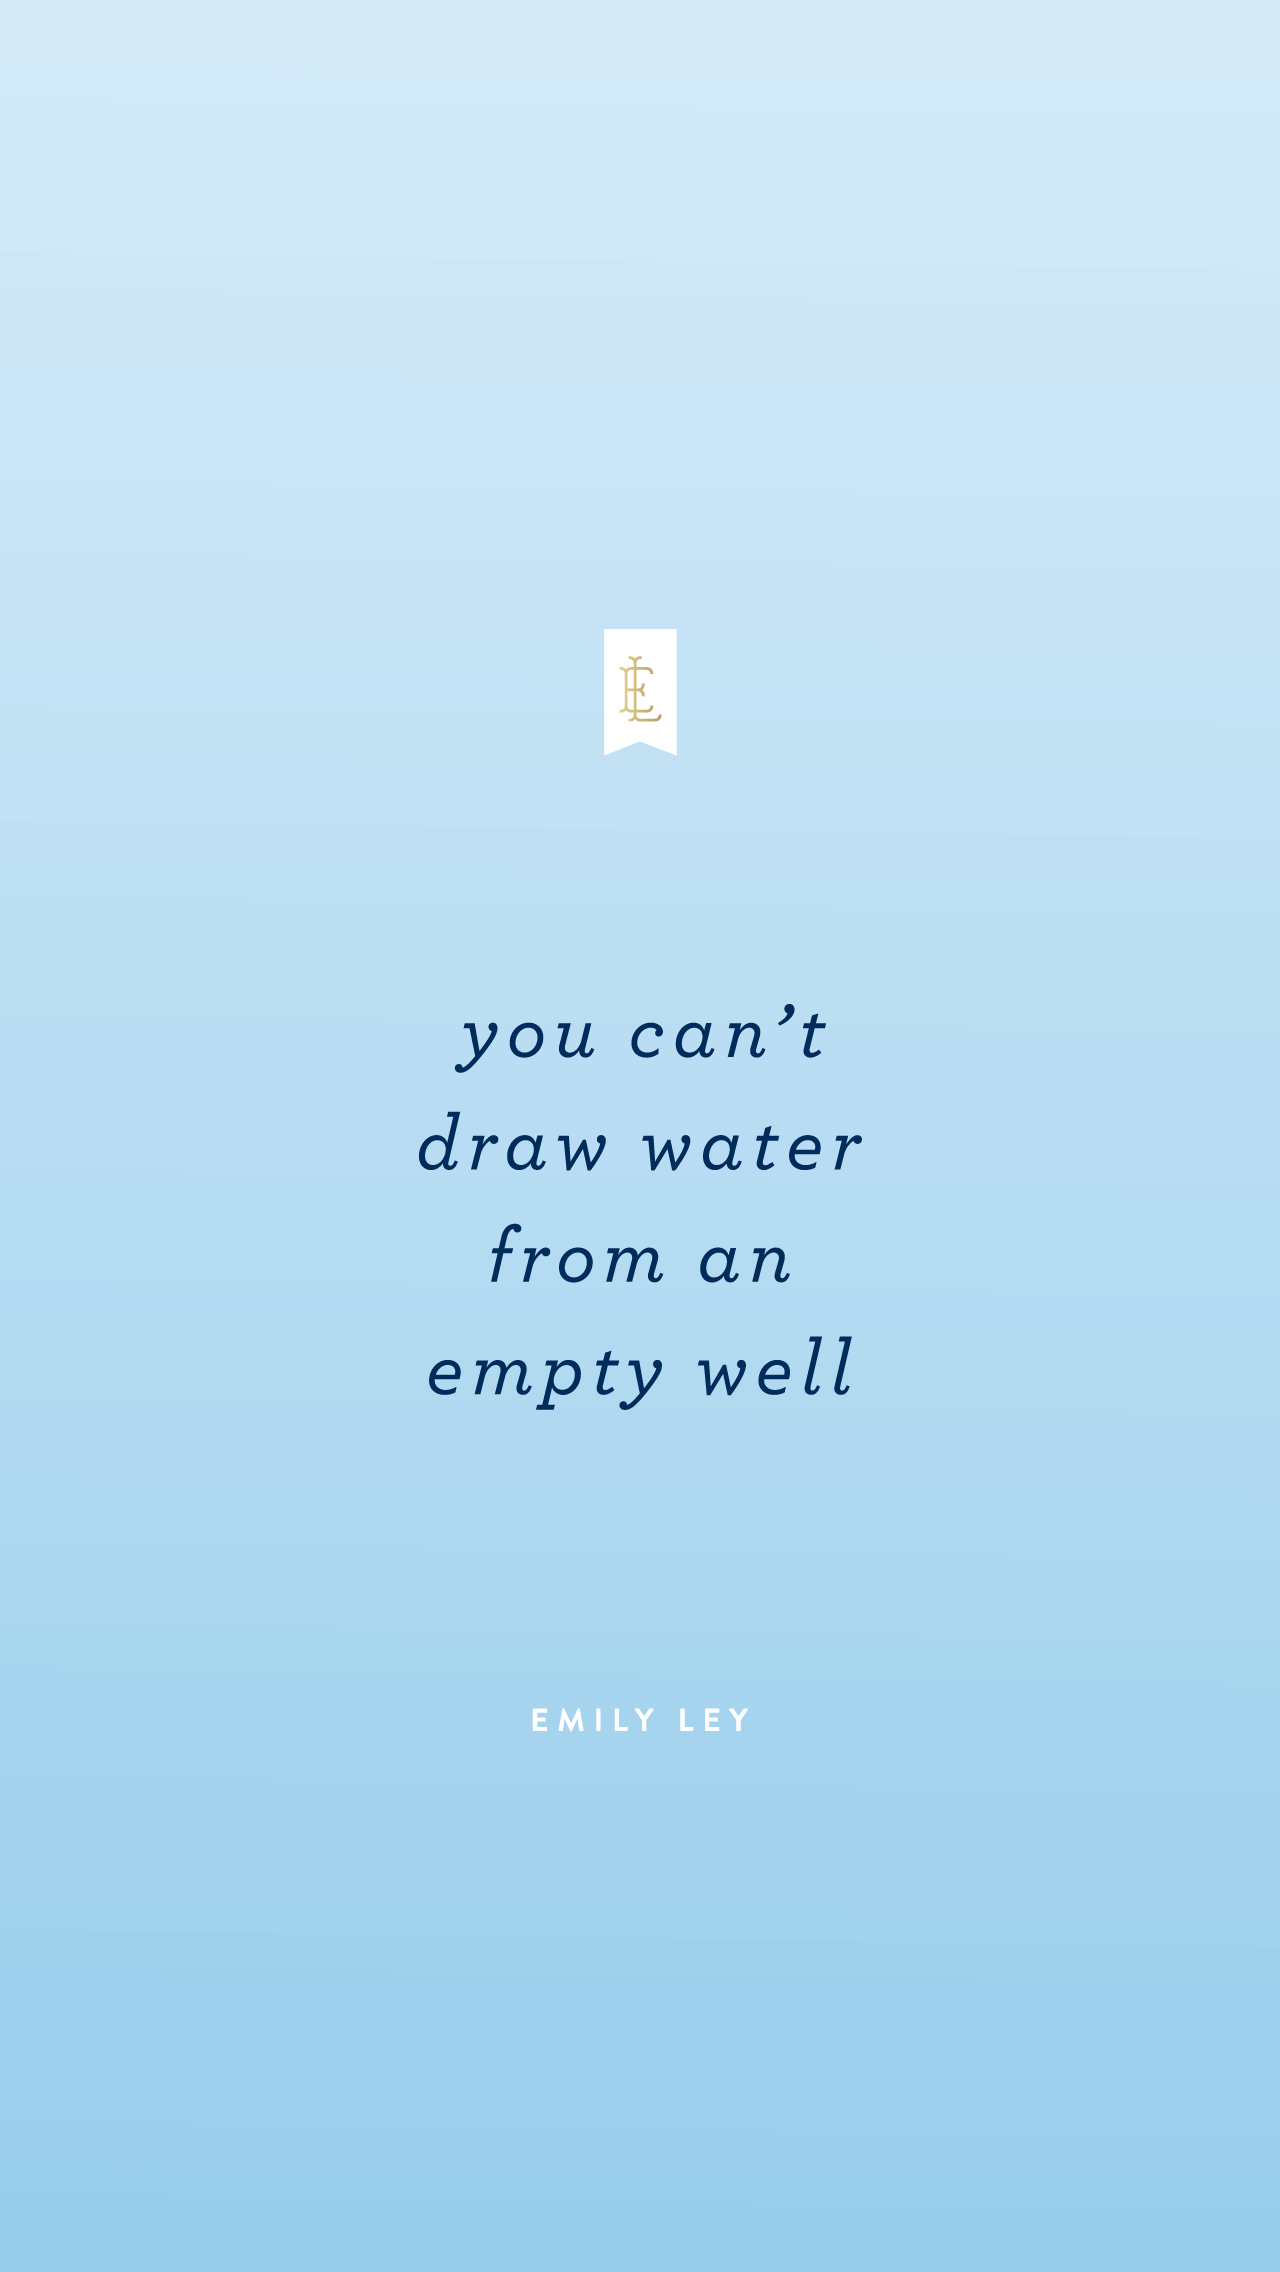 You can't draw water from an empty well. - Emily Ley